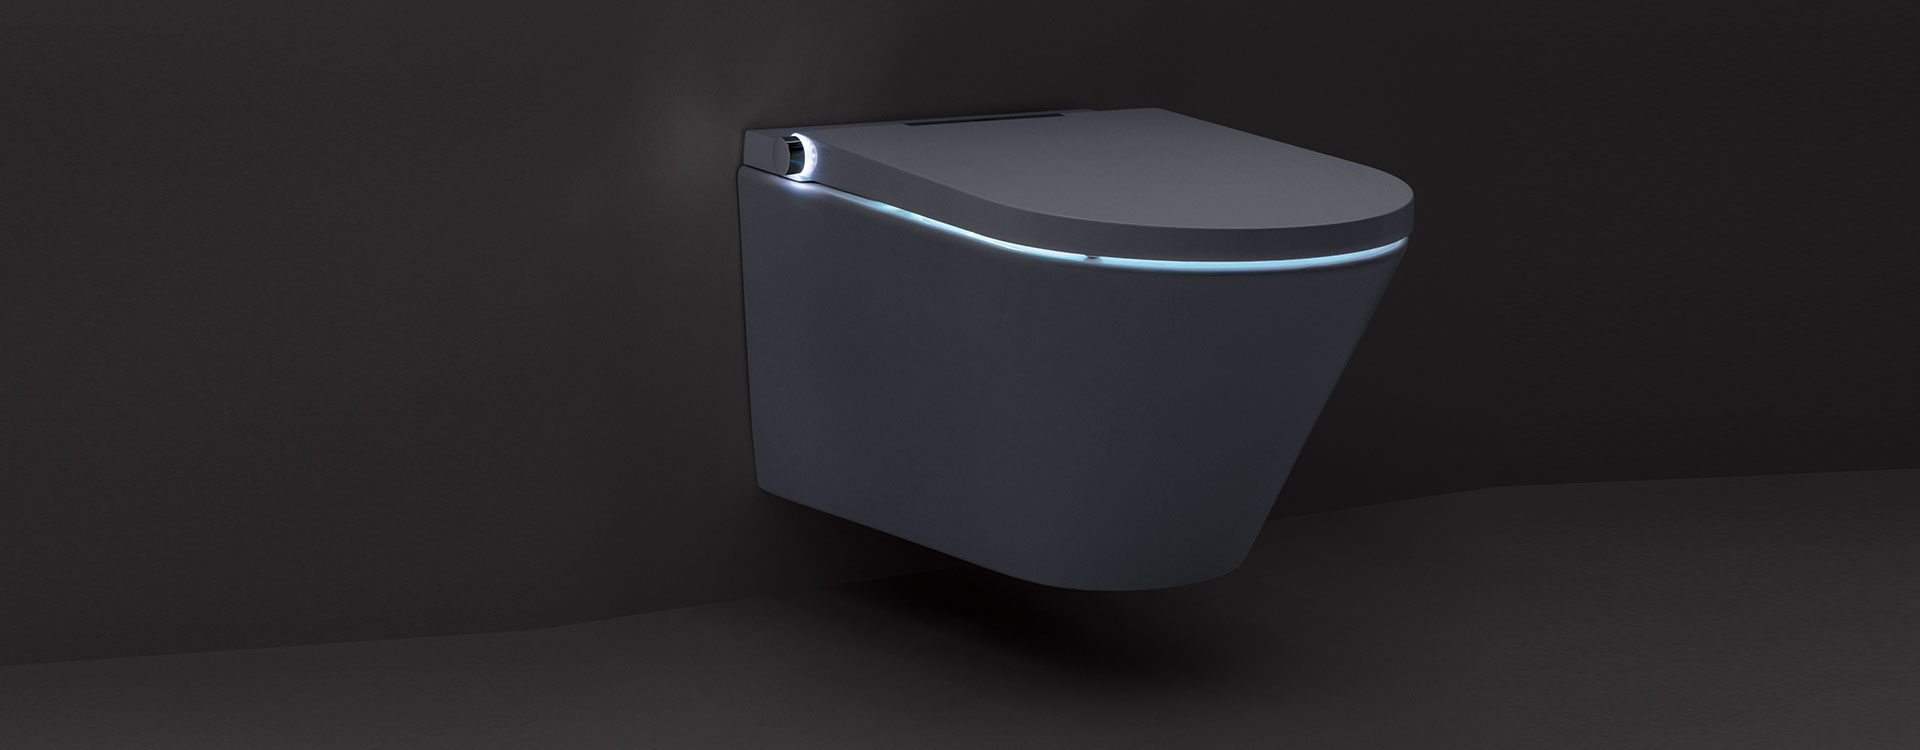 AXENT.ONE Shower toilet